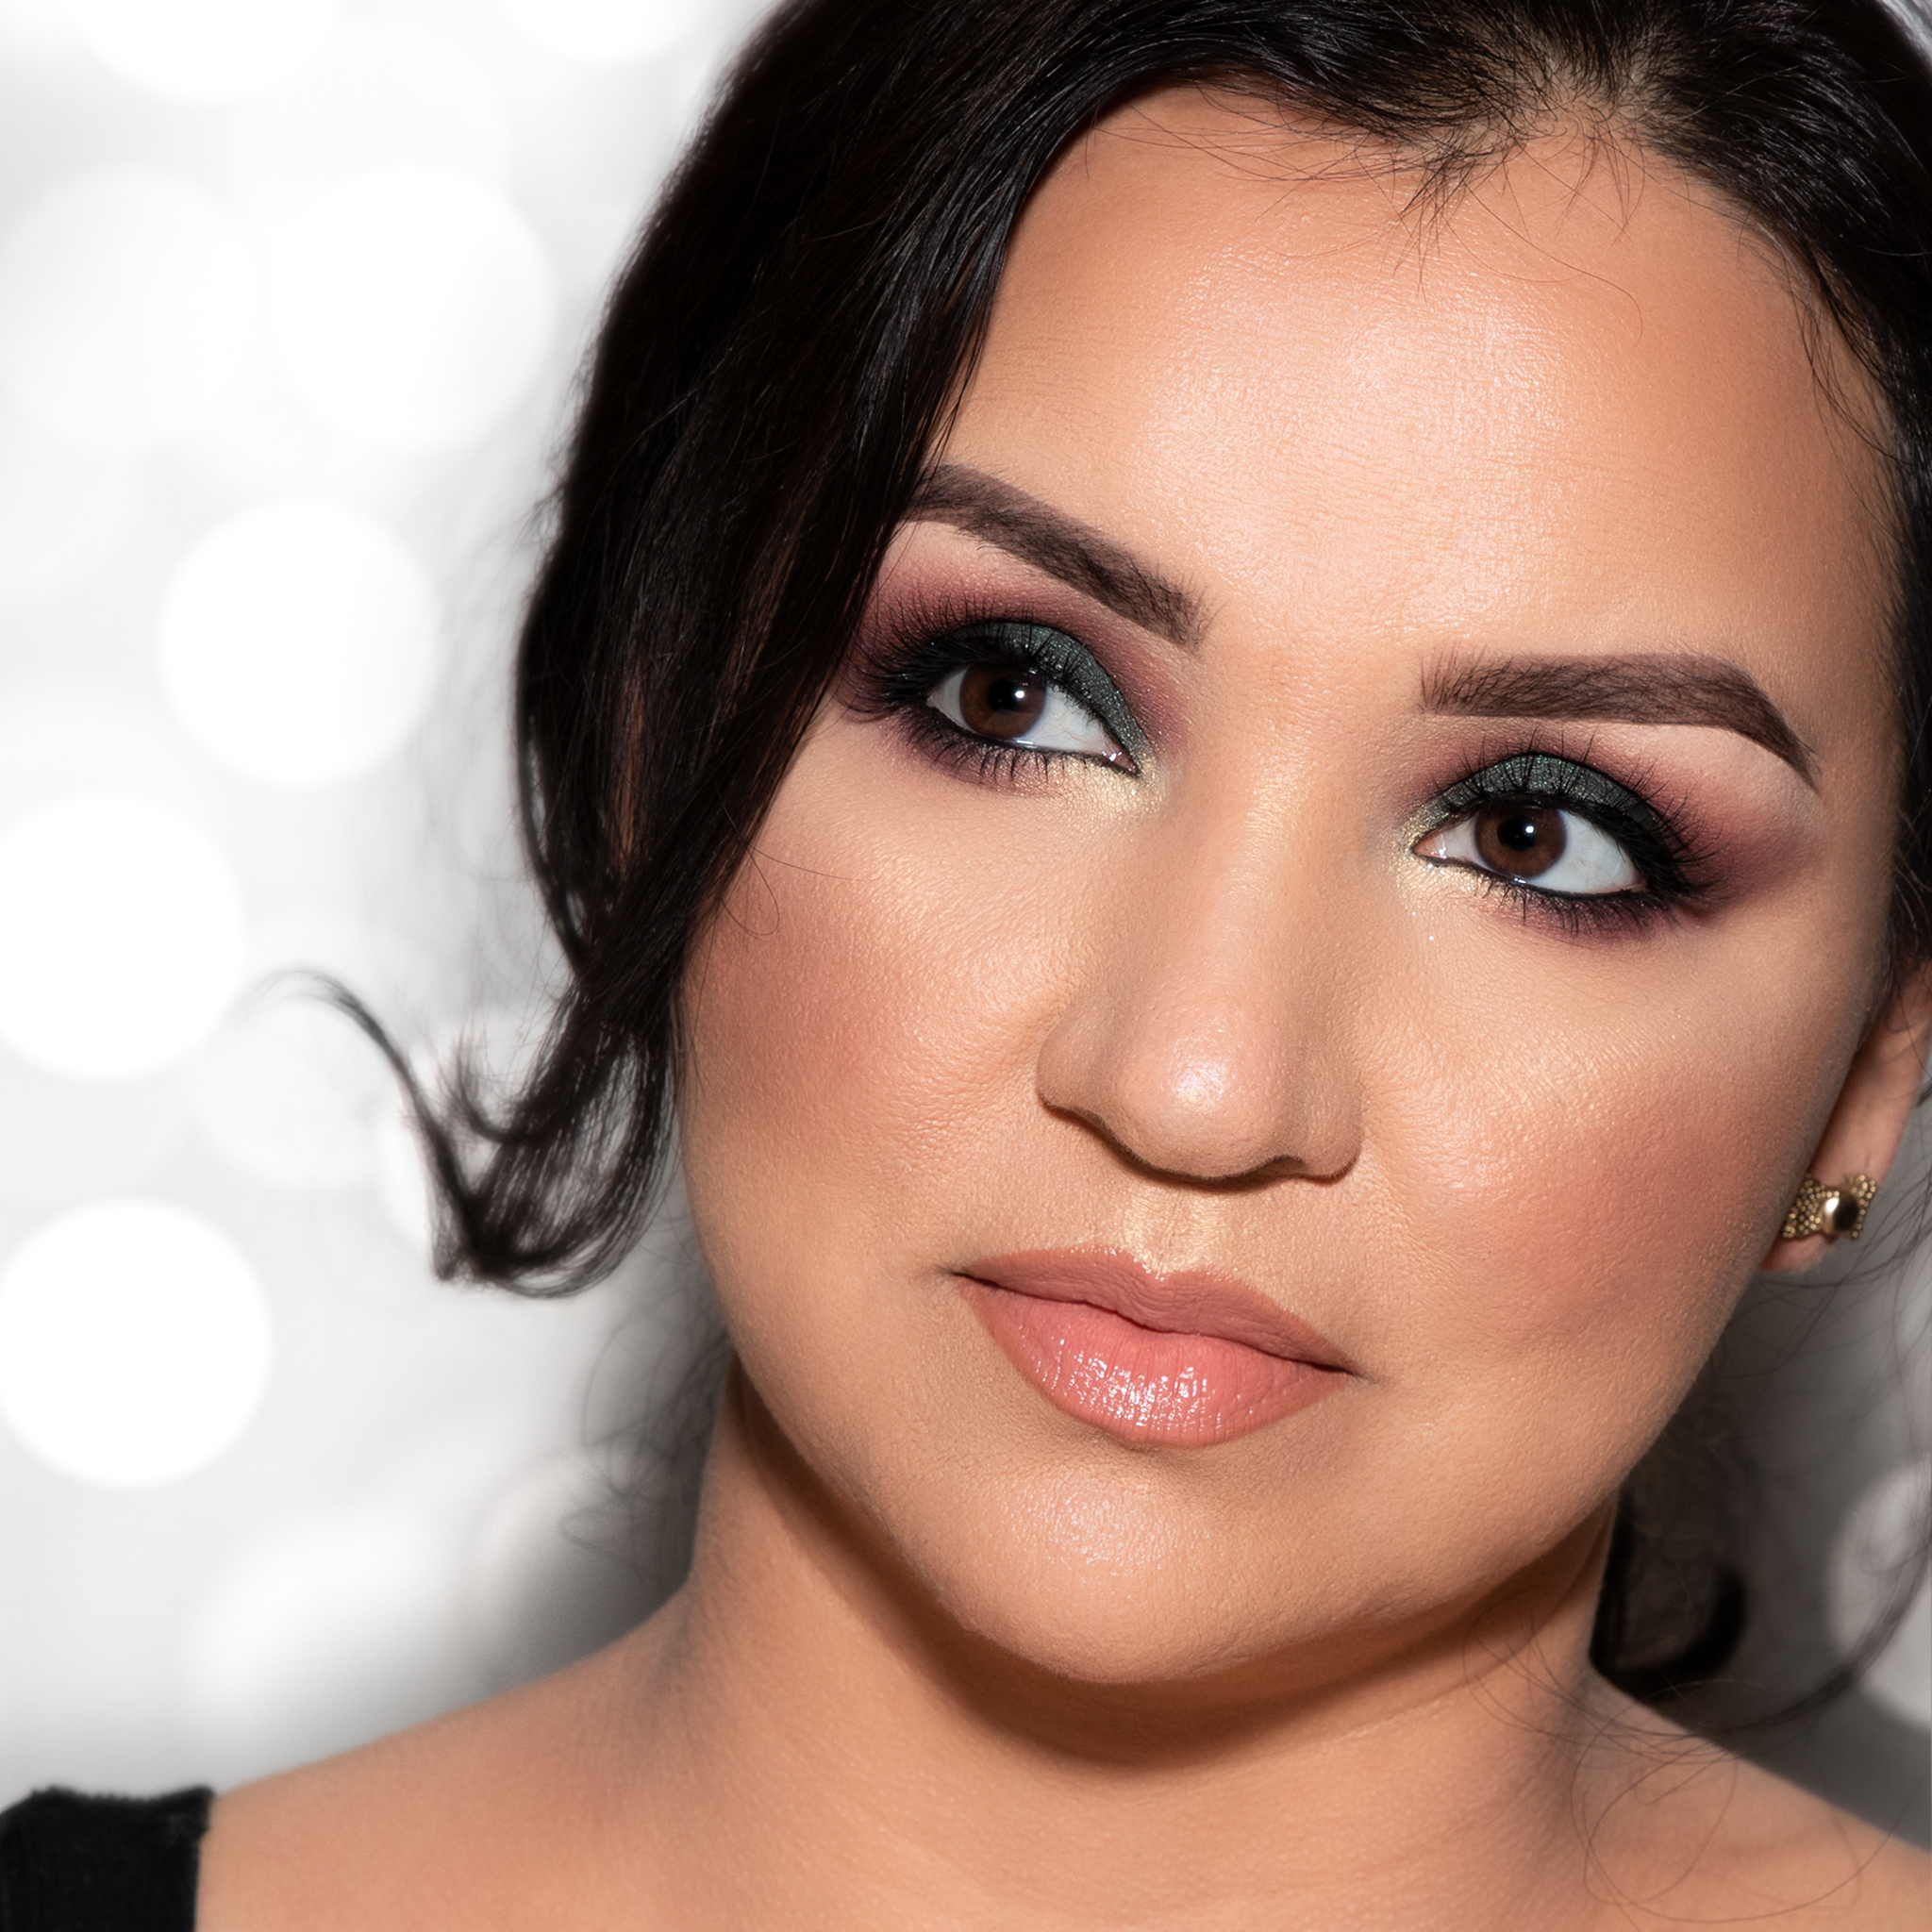 Get The Look: 4 New Year's Eve Eye Looks